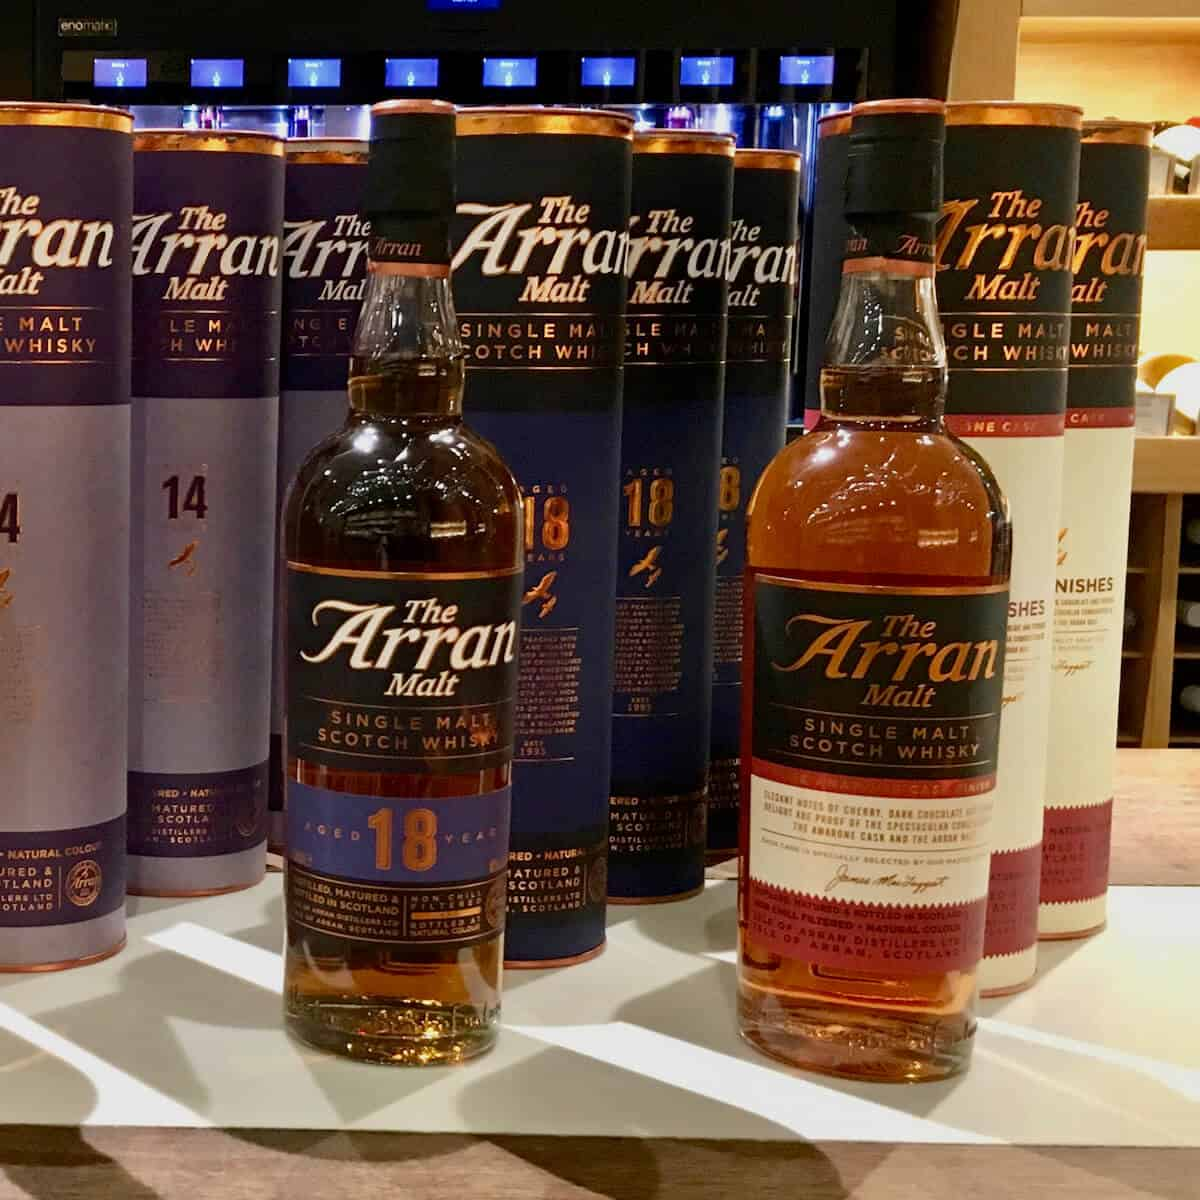 Bottles and sleeves of Arran Malt 18 year & Amarone finish on a counter.